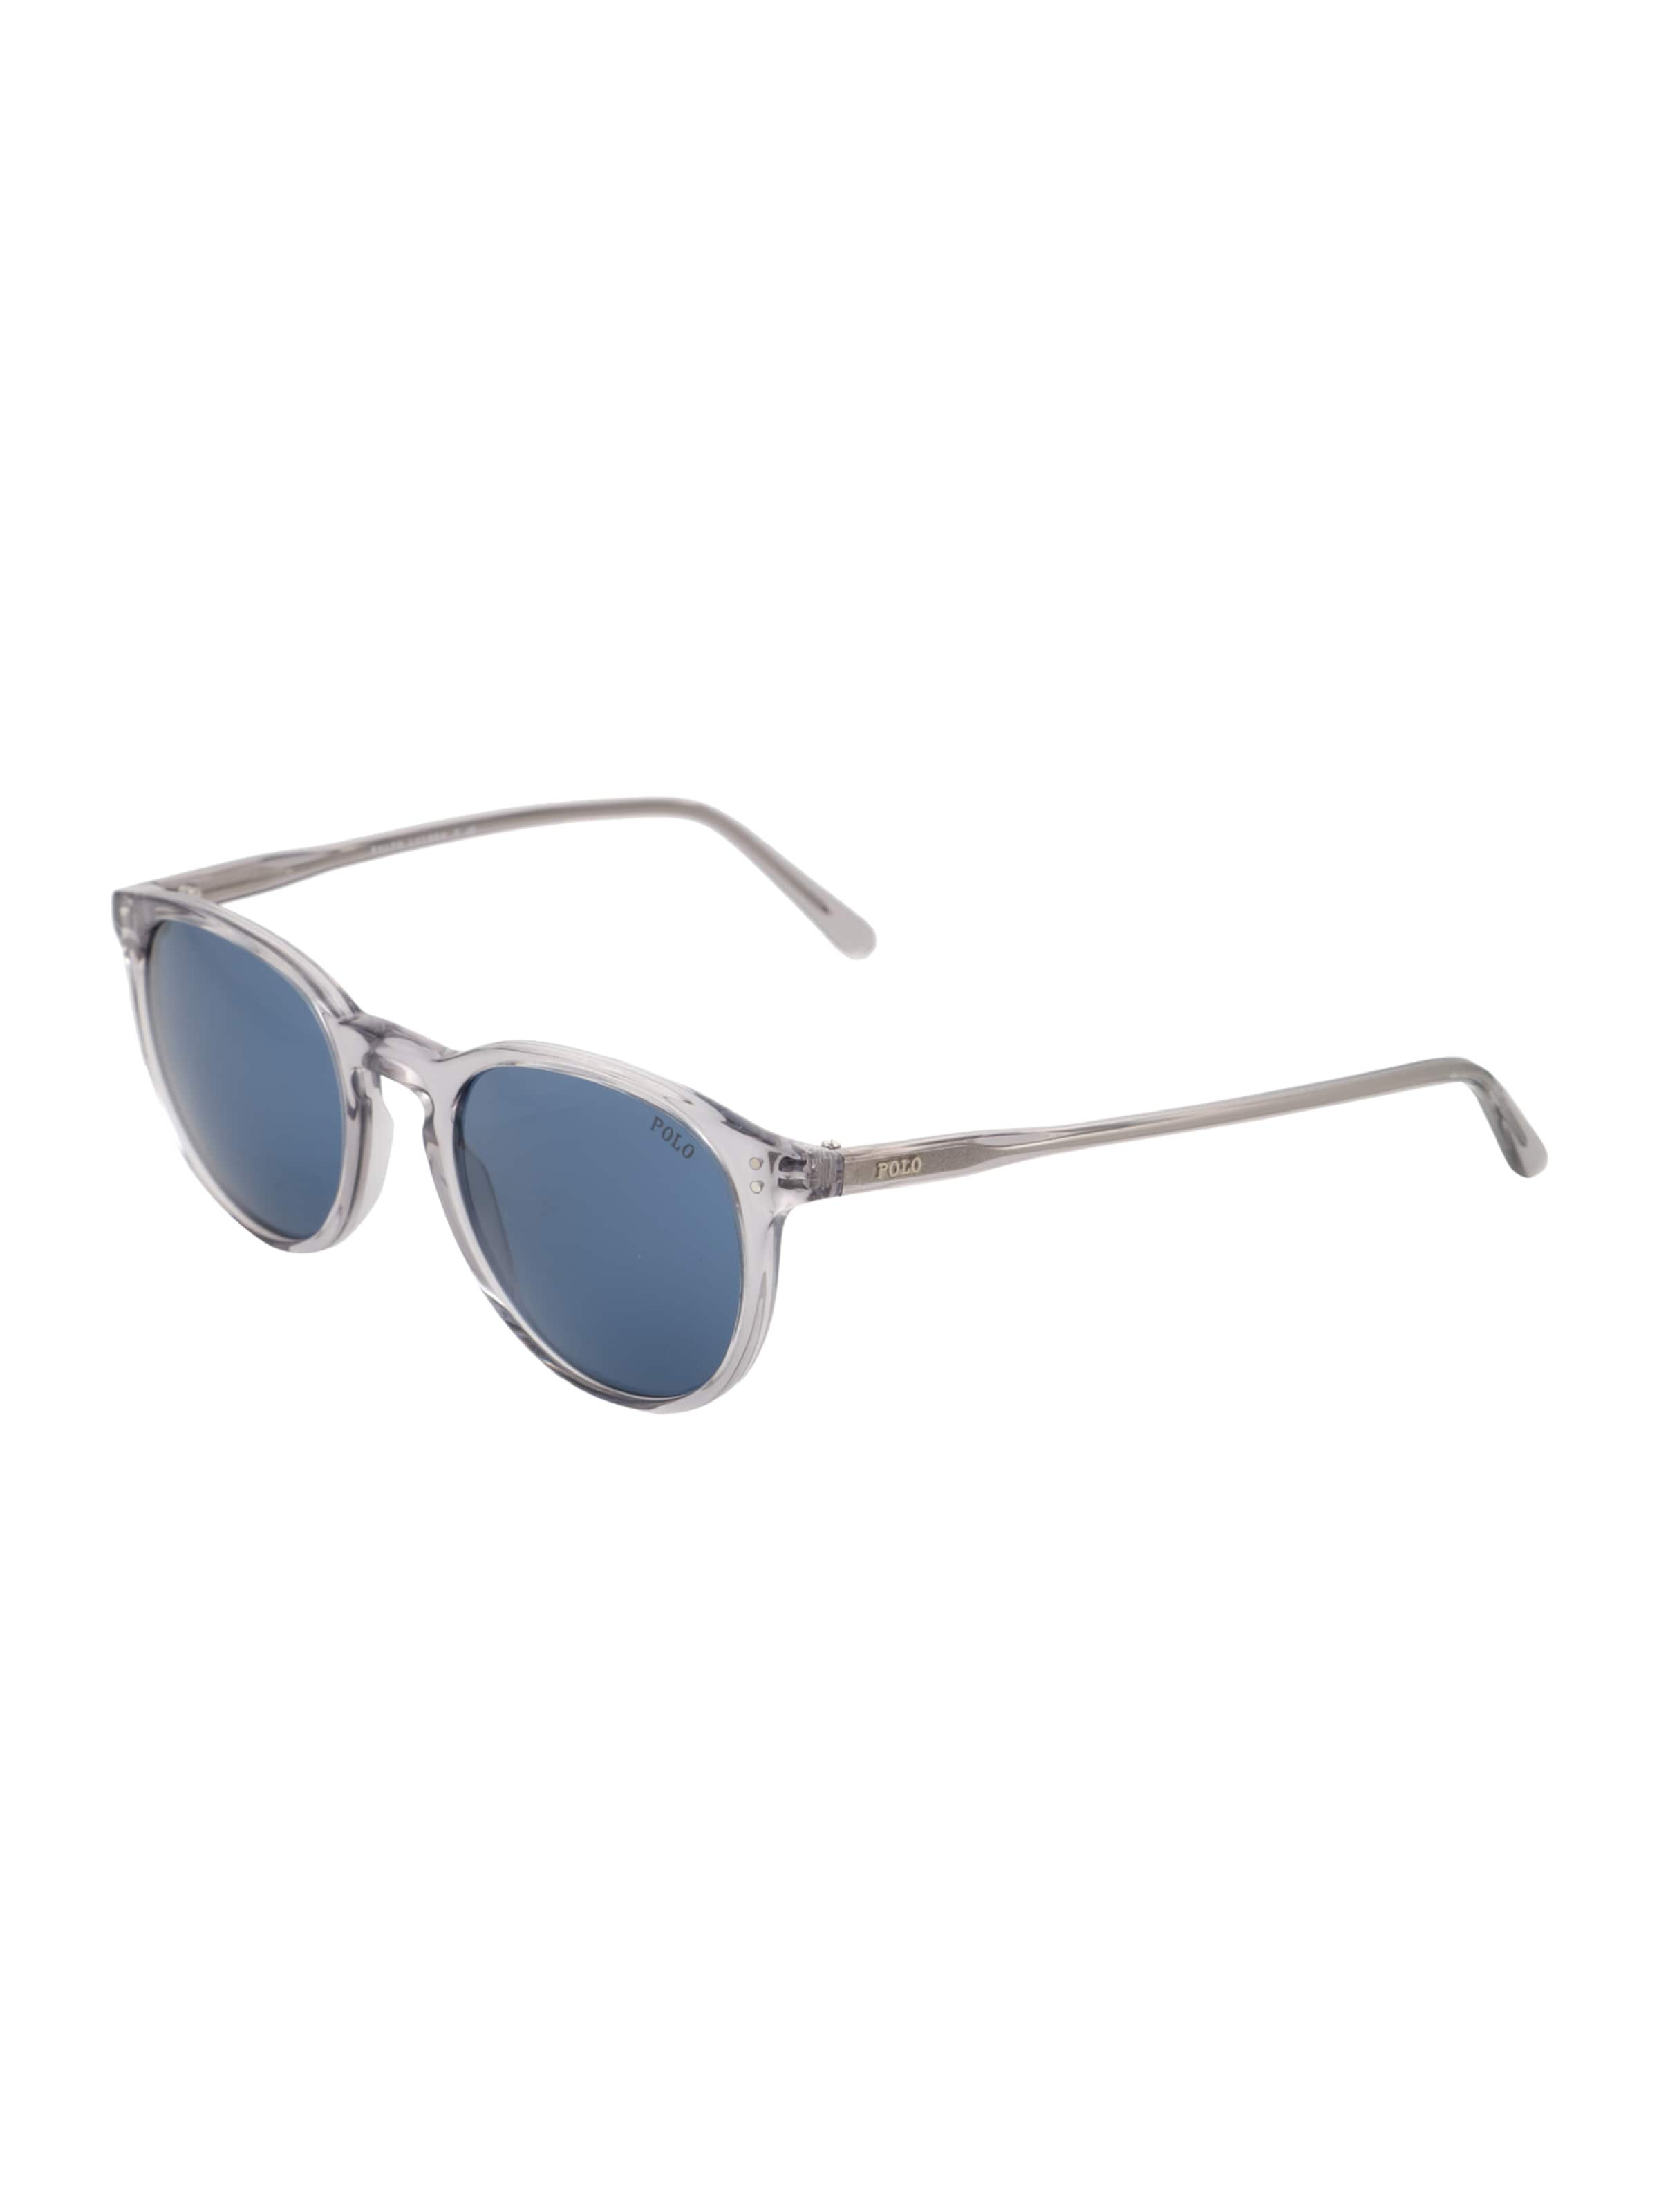 Sonnenbrille gestell In Lauren Casual Ralph Polo BlauGrau Transparent Mit Panto MqzpGSVU